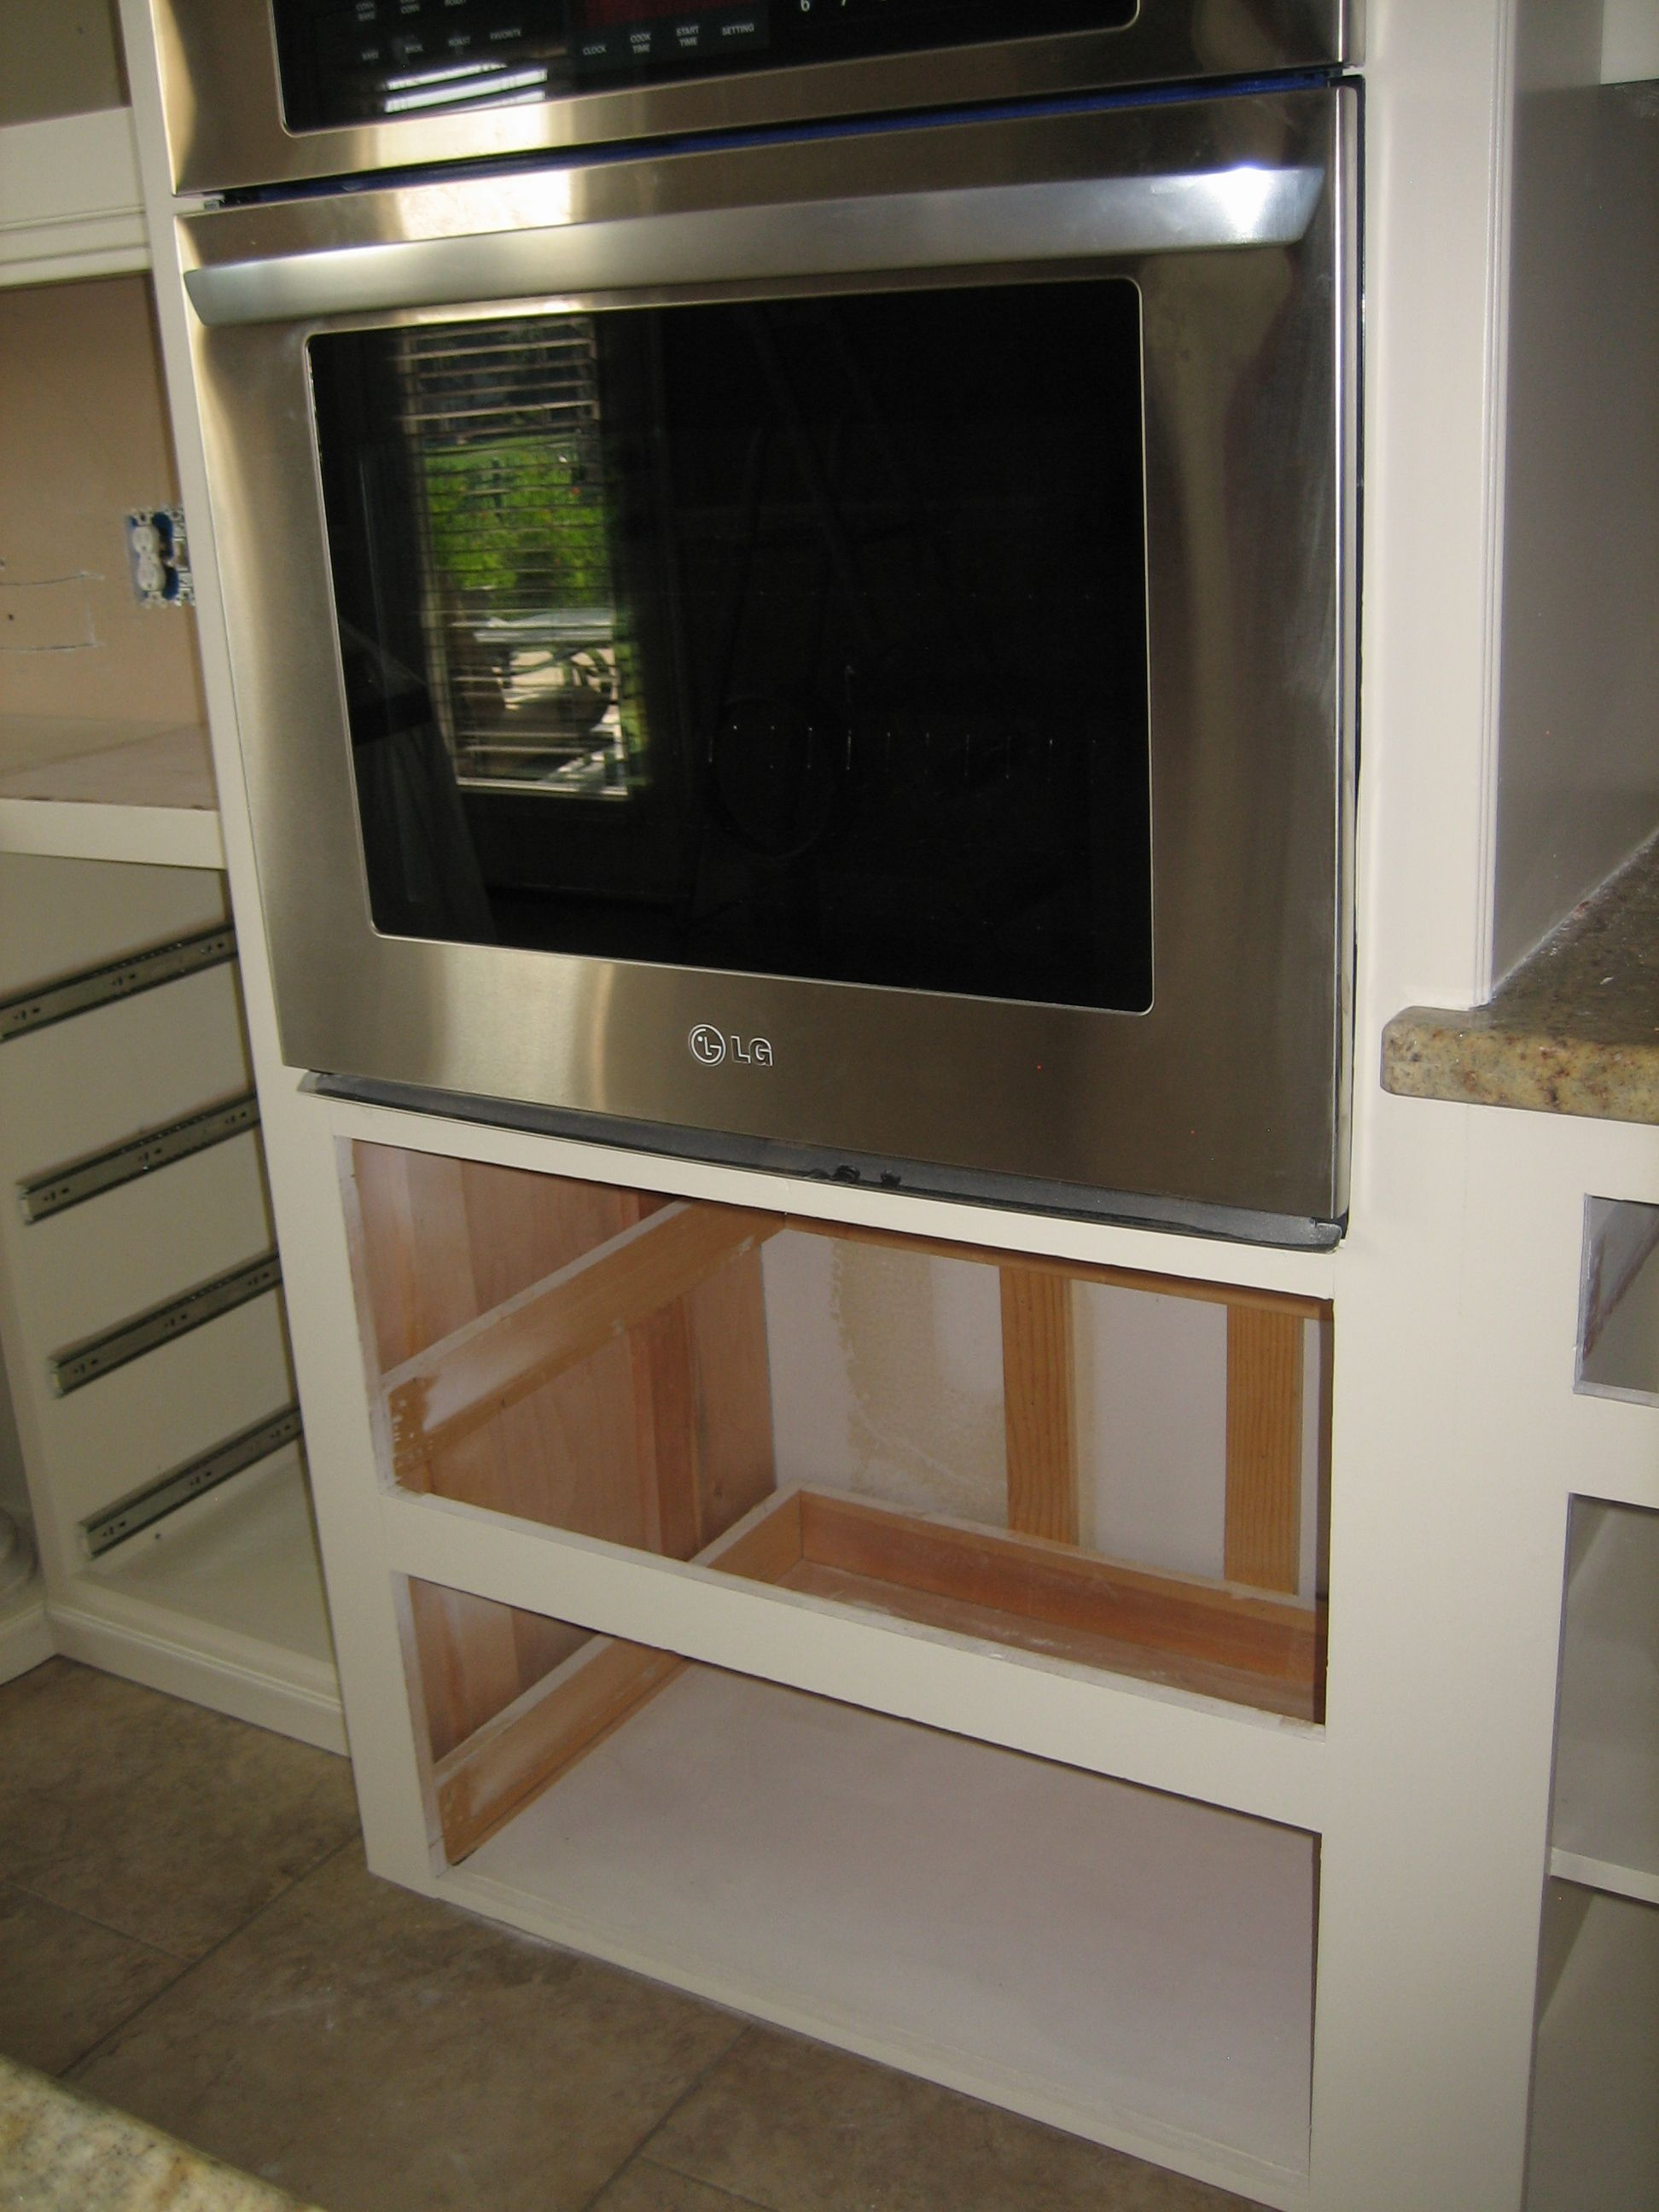 I Had Not Originally Elected To Change Out The Wall Oven Since I Was So Happy With The Lg Convection Oven That Was Already In Wall Oven Kitchen Styling Kitchen